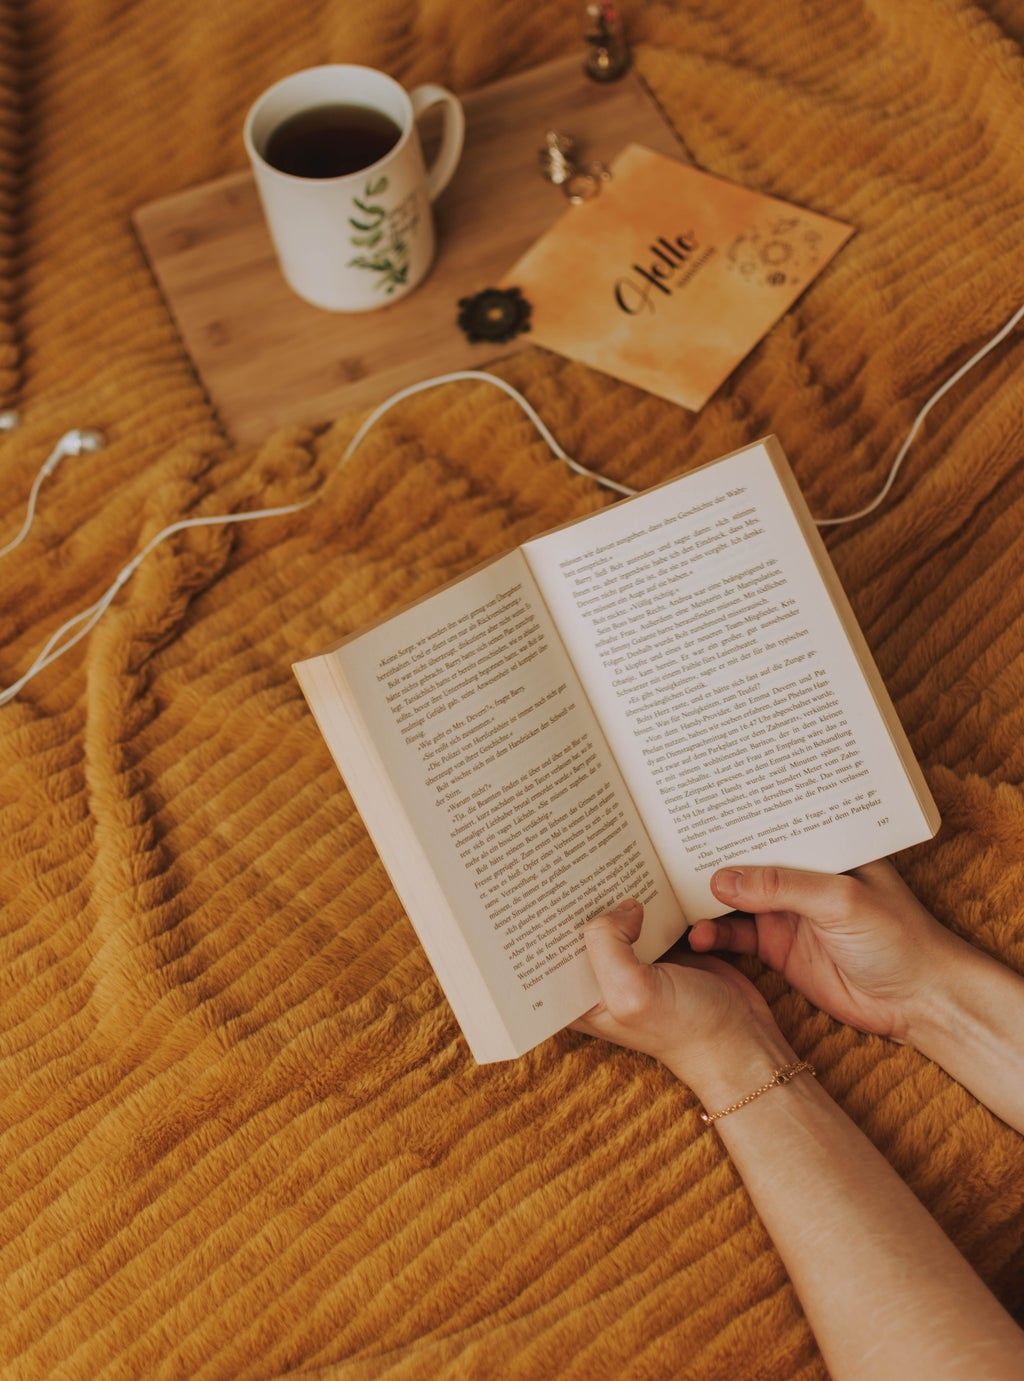 Someone holding a book on a yellow bed.